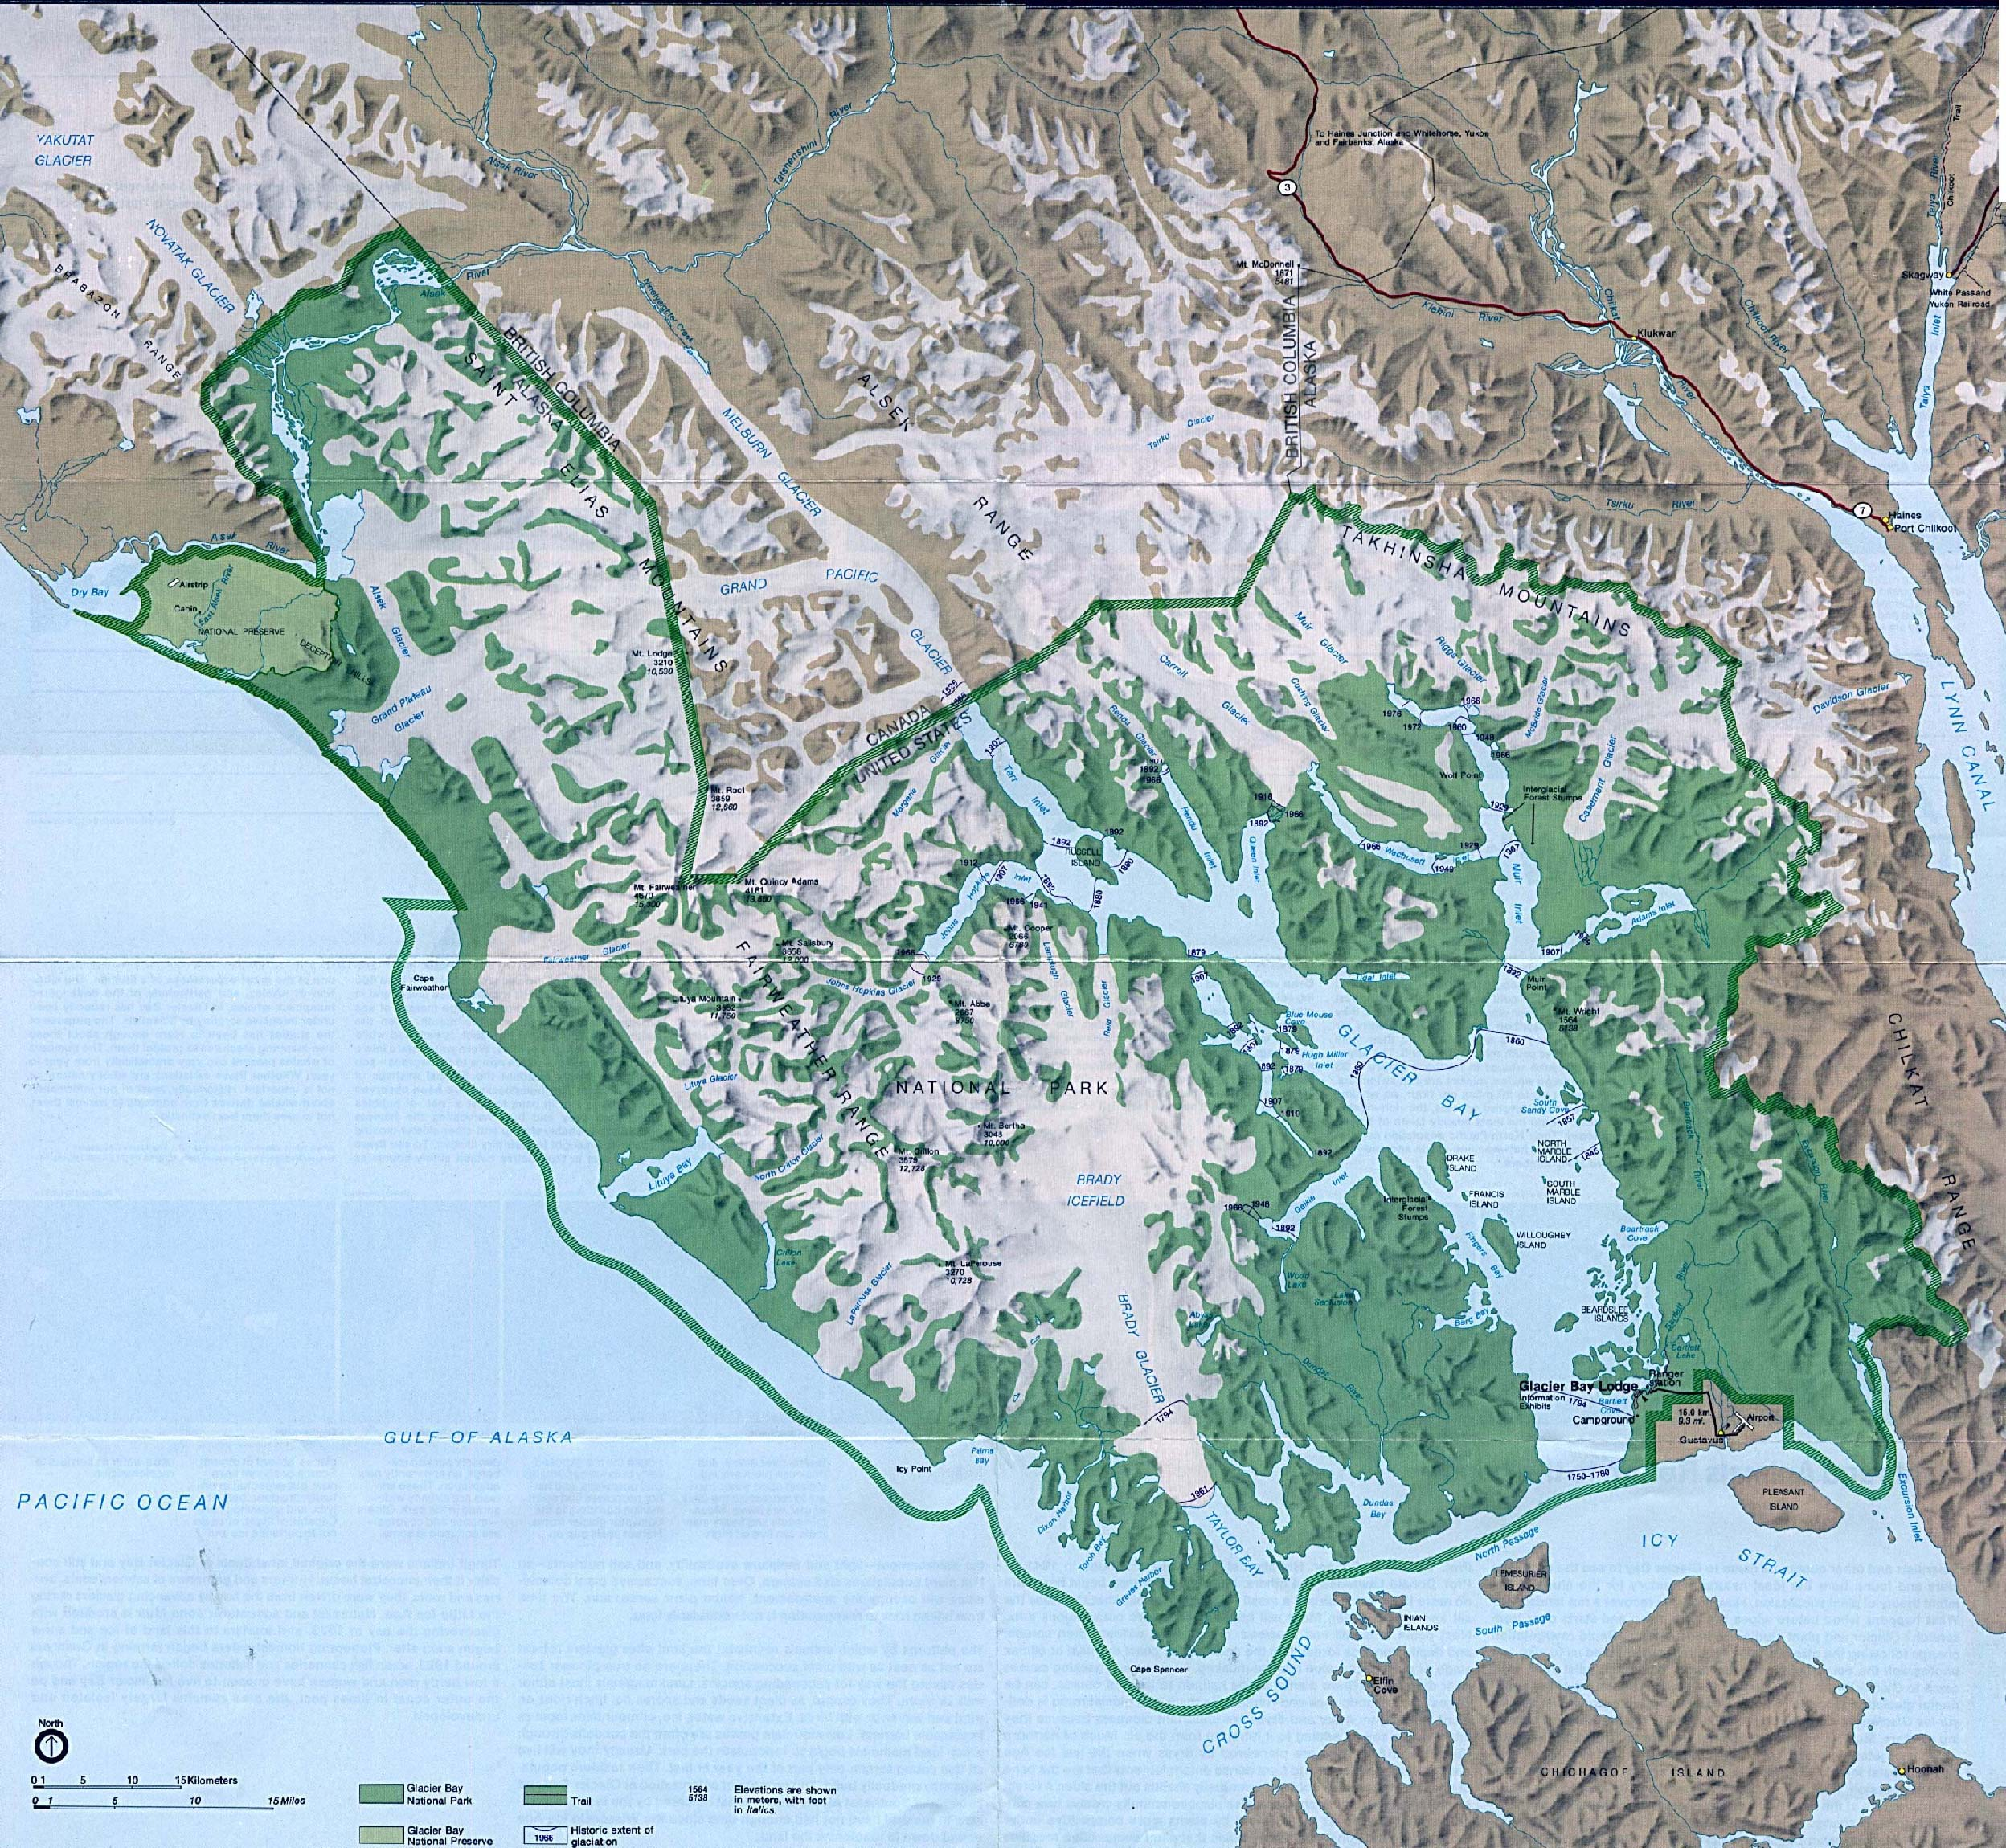 Alaska Maps - Perry-Castañeda Map Collection - UT Library Online